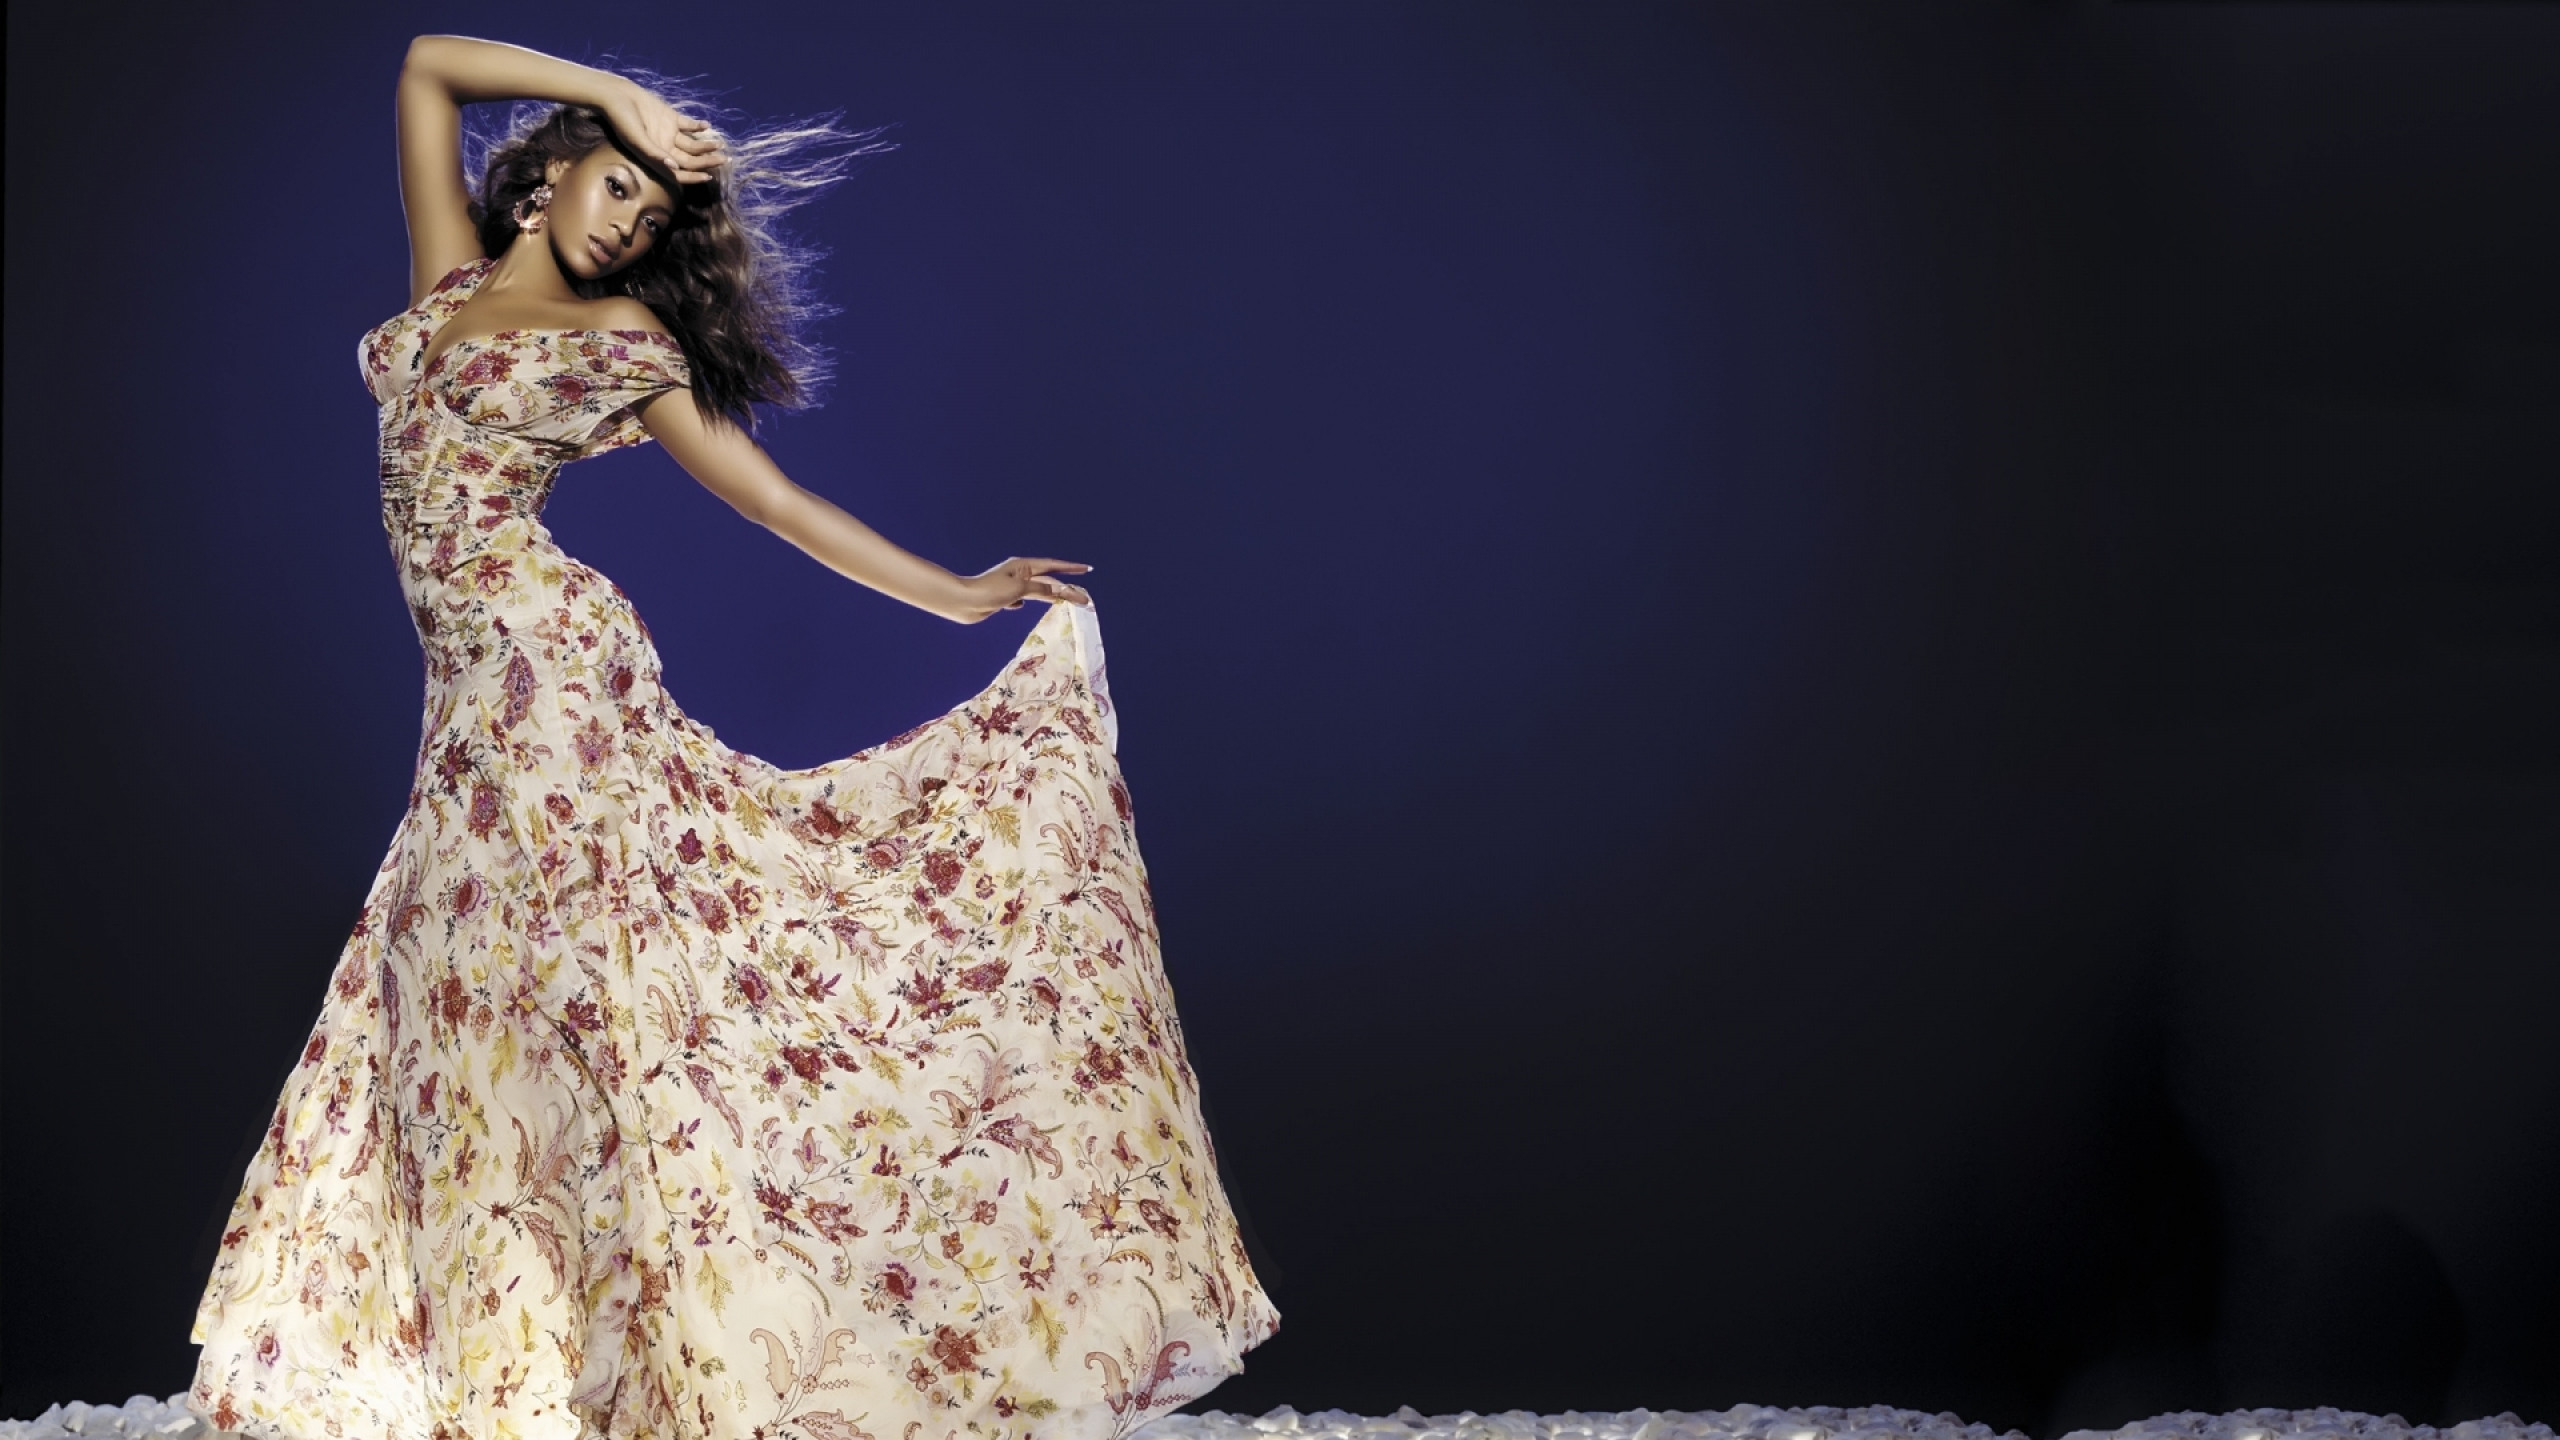 2560x1440  Wallpaper beyonce, gypsy, dress, dance, earrings